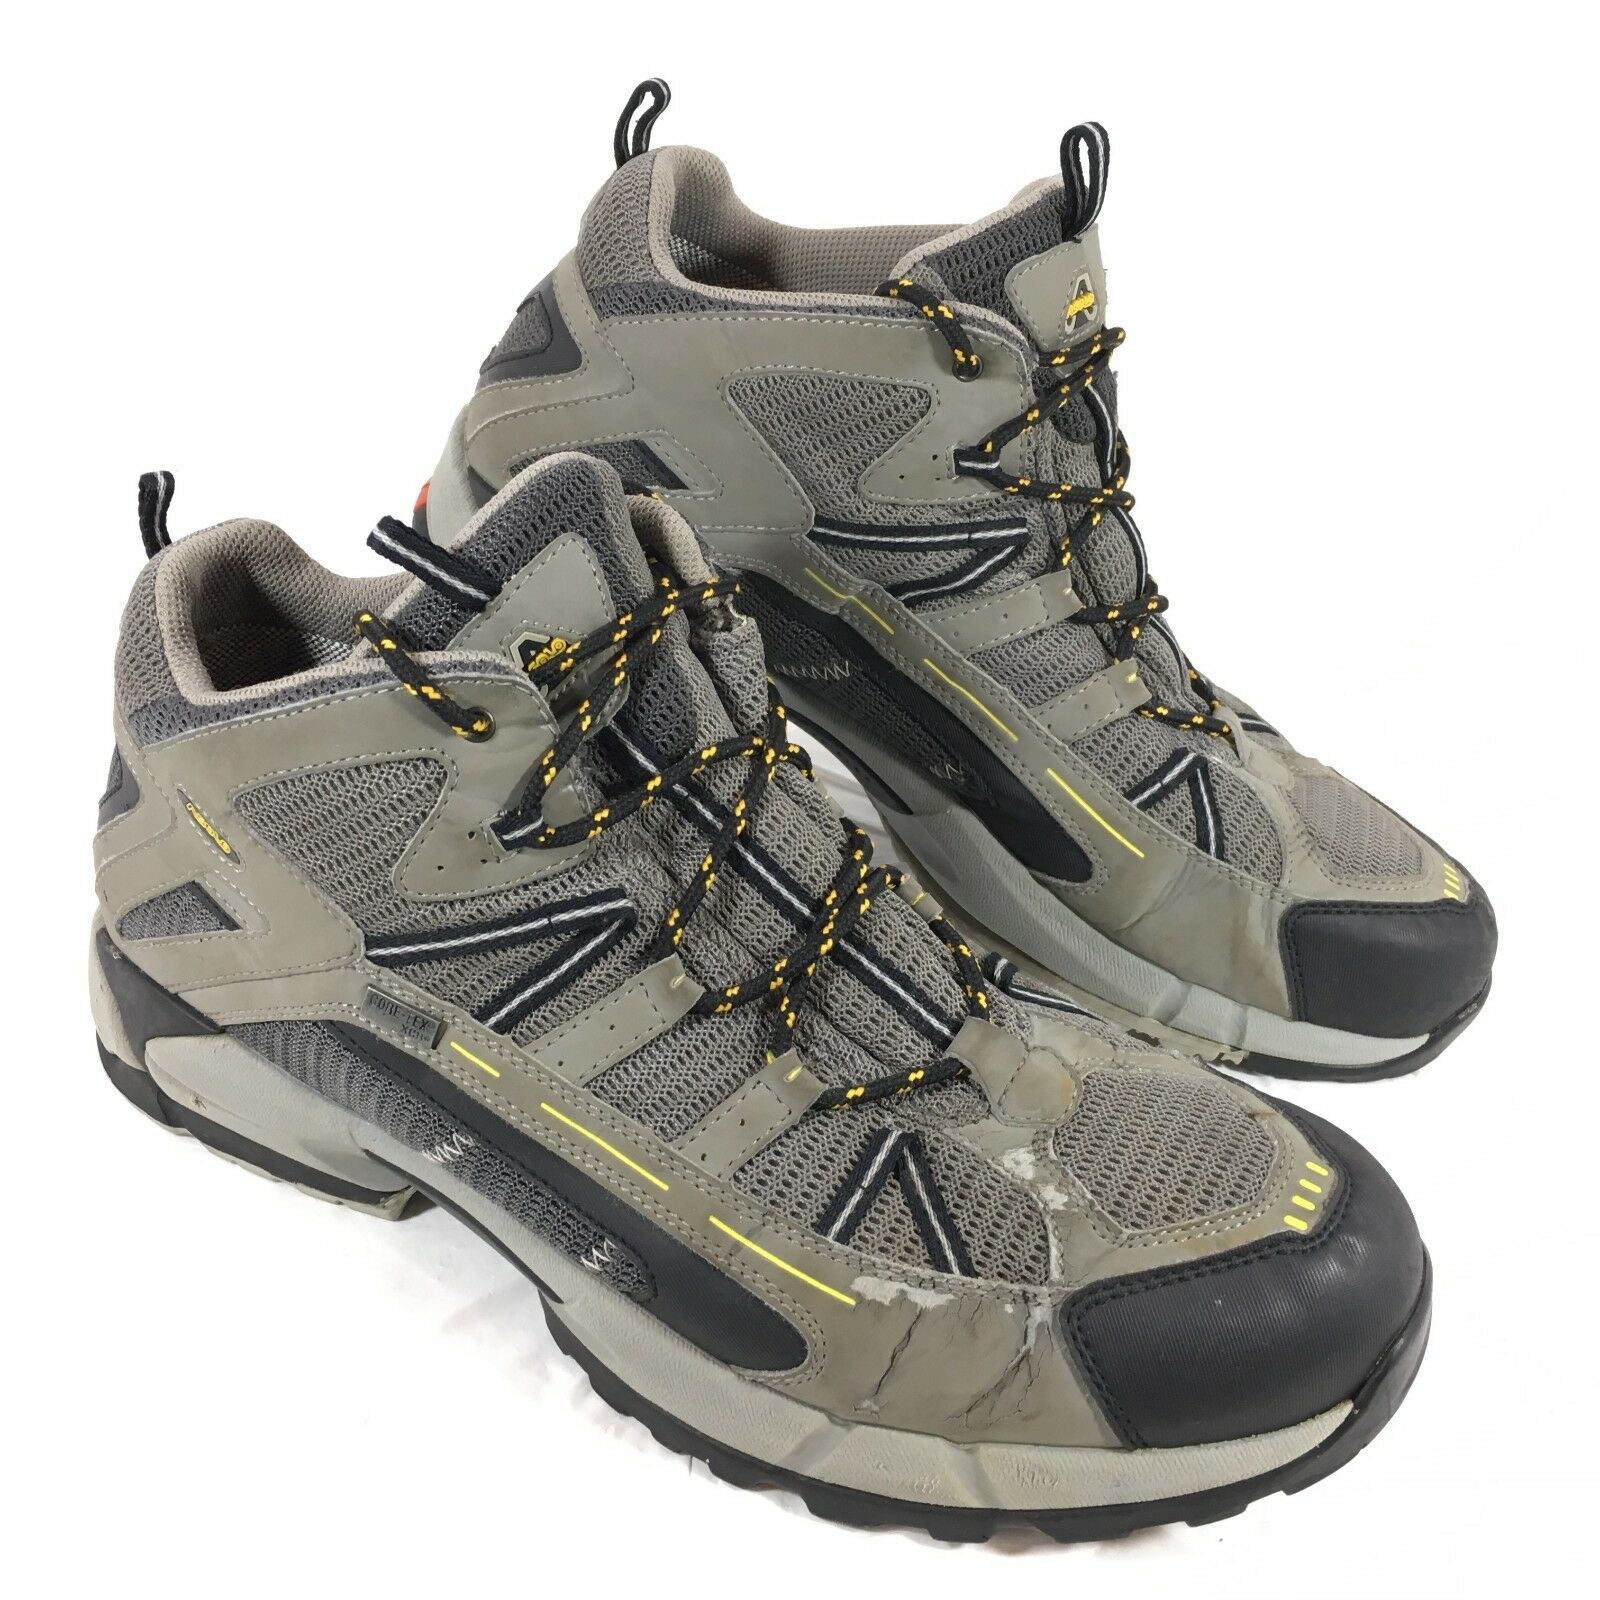 Homme Asolo Gris Hiking Trail Chaussures Tenacity XCR Sz 11.5